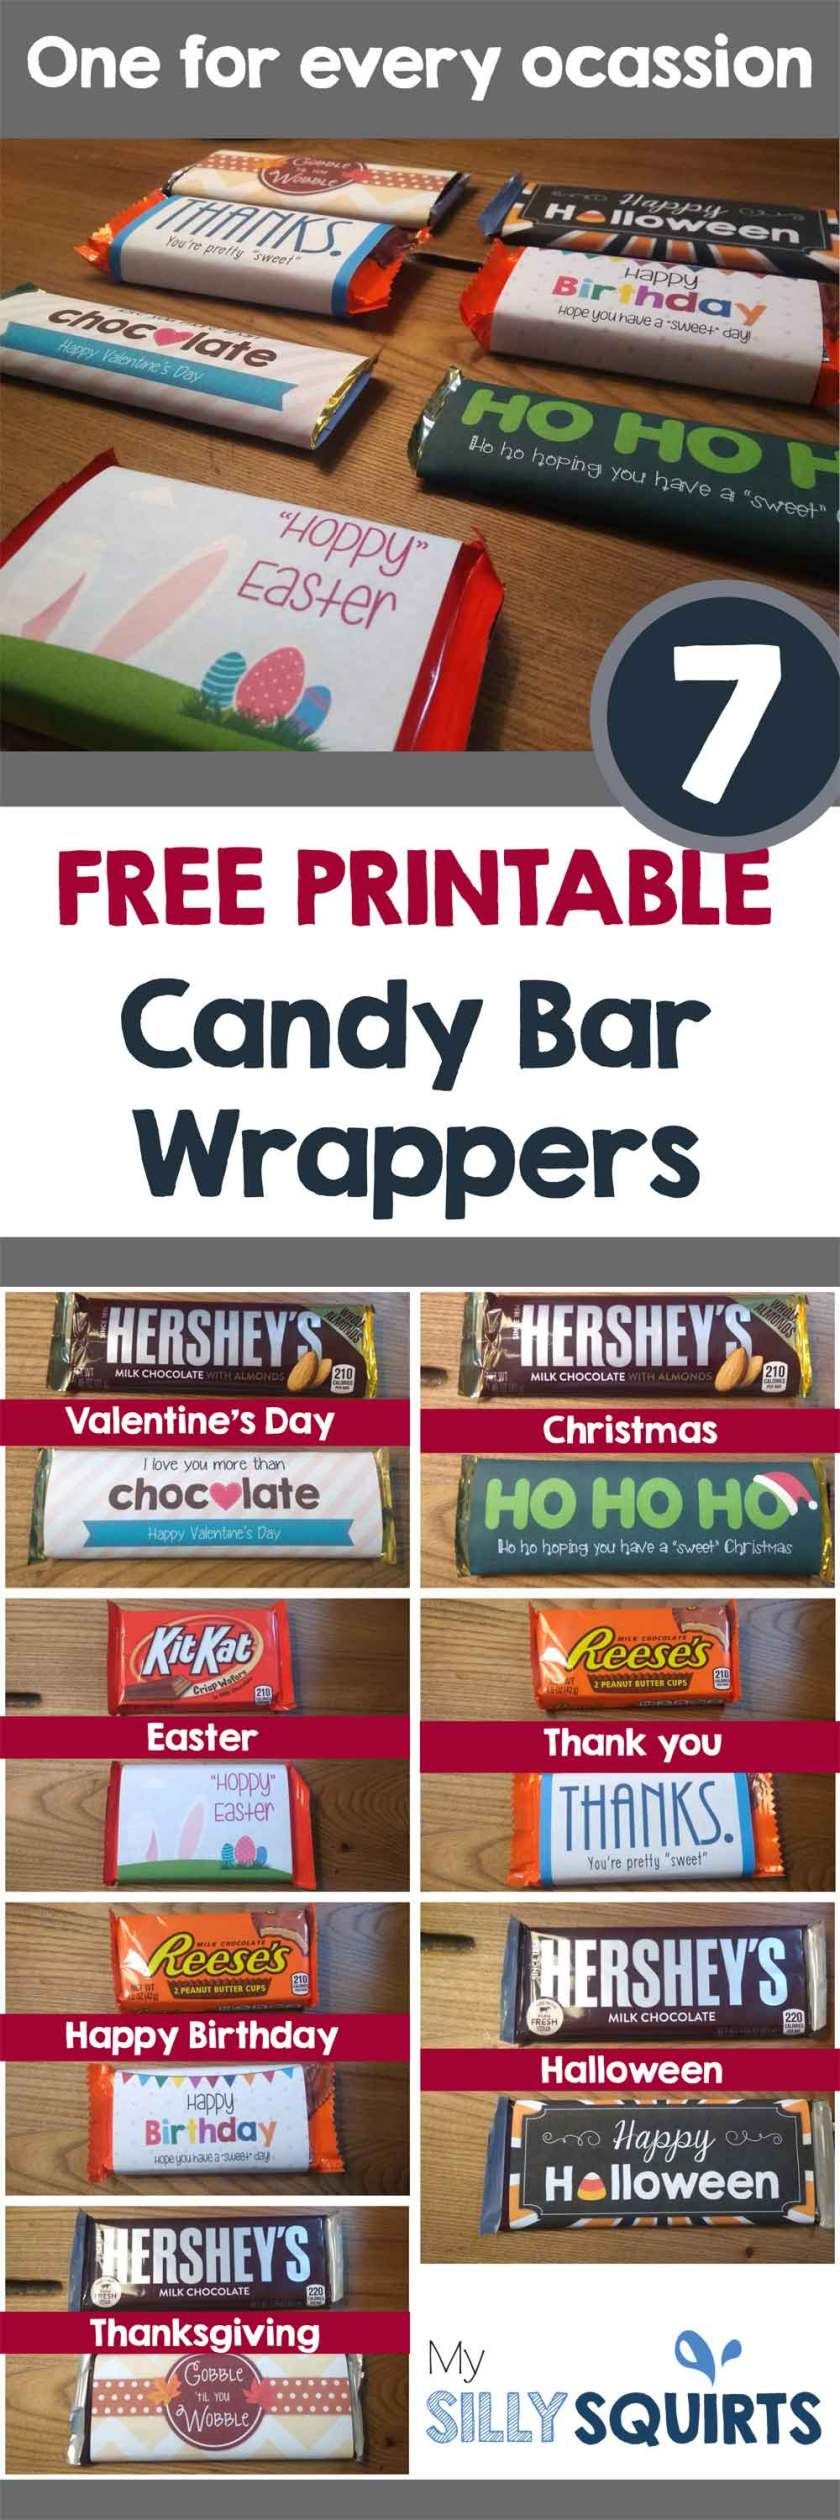 Seven Free Candy Bar Wrappers For Every Occasion My Silly Squirts